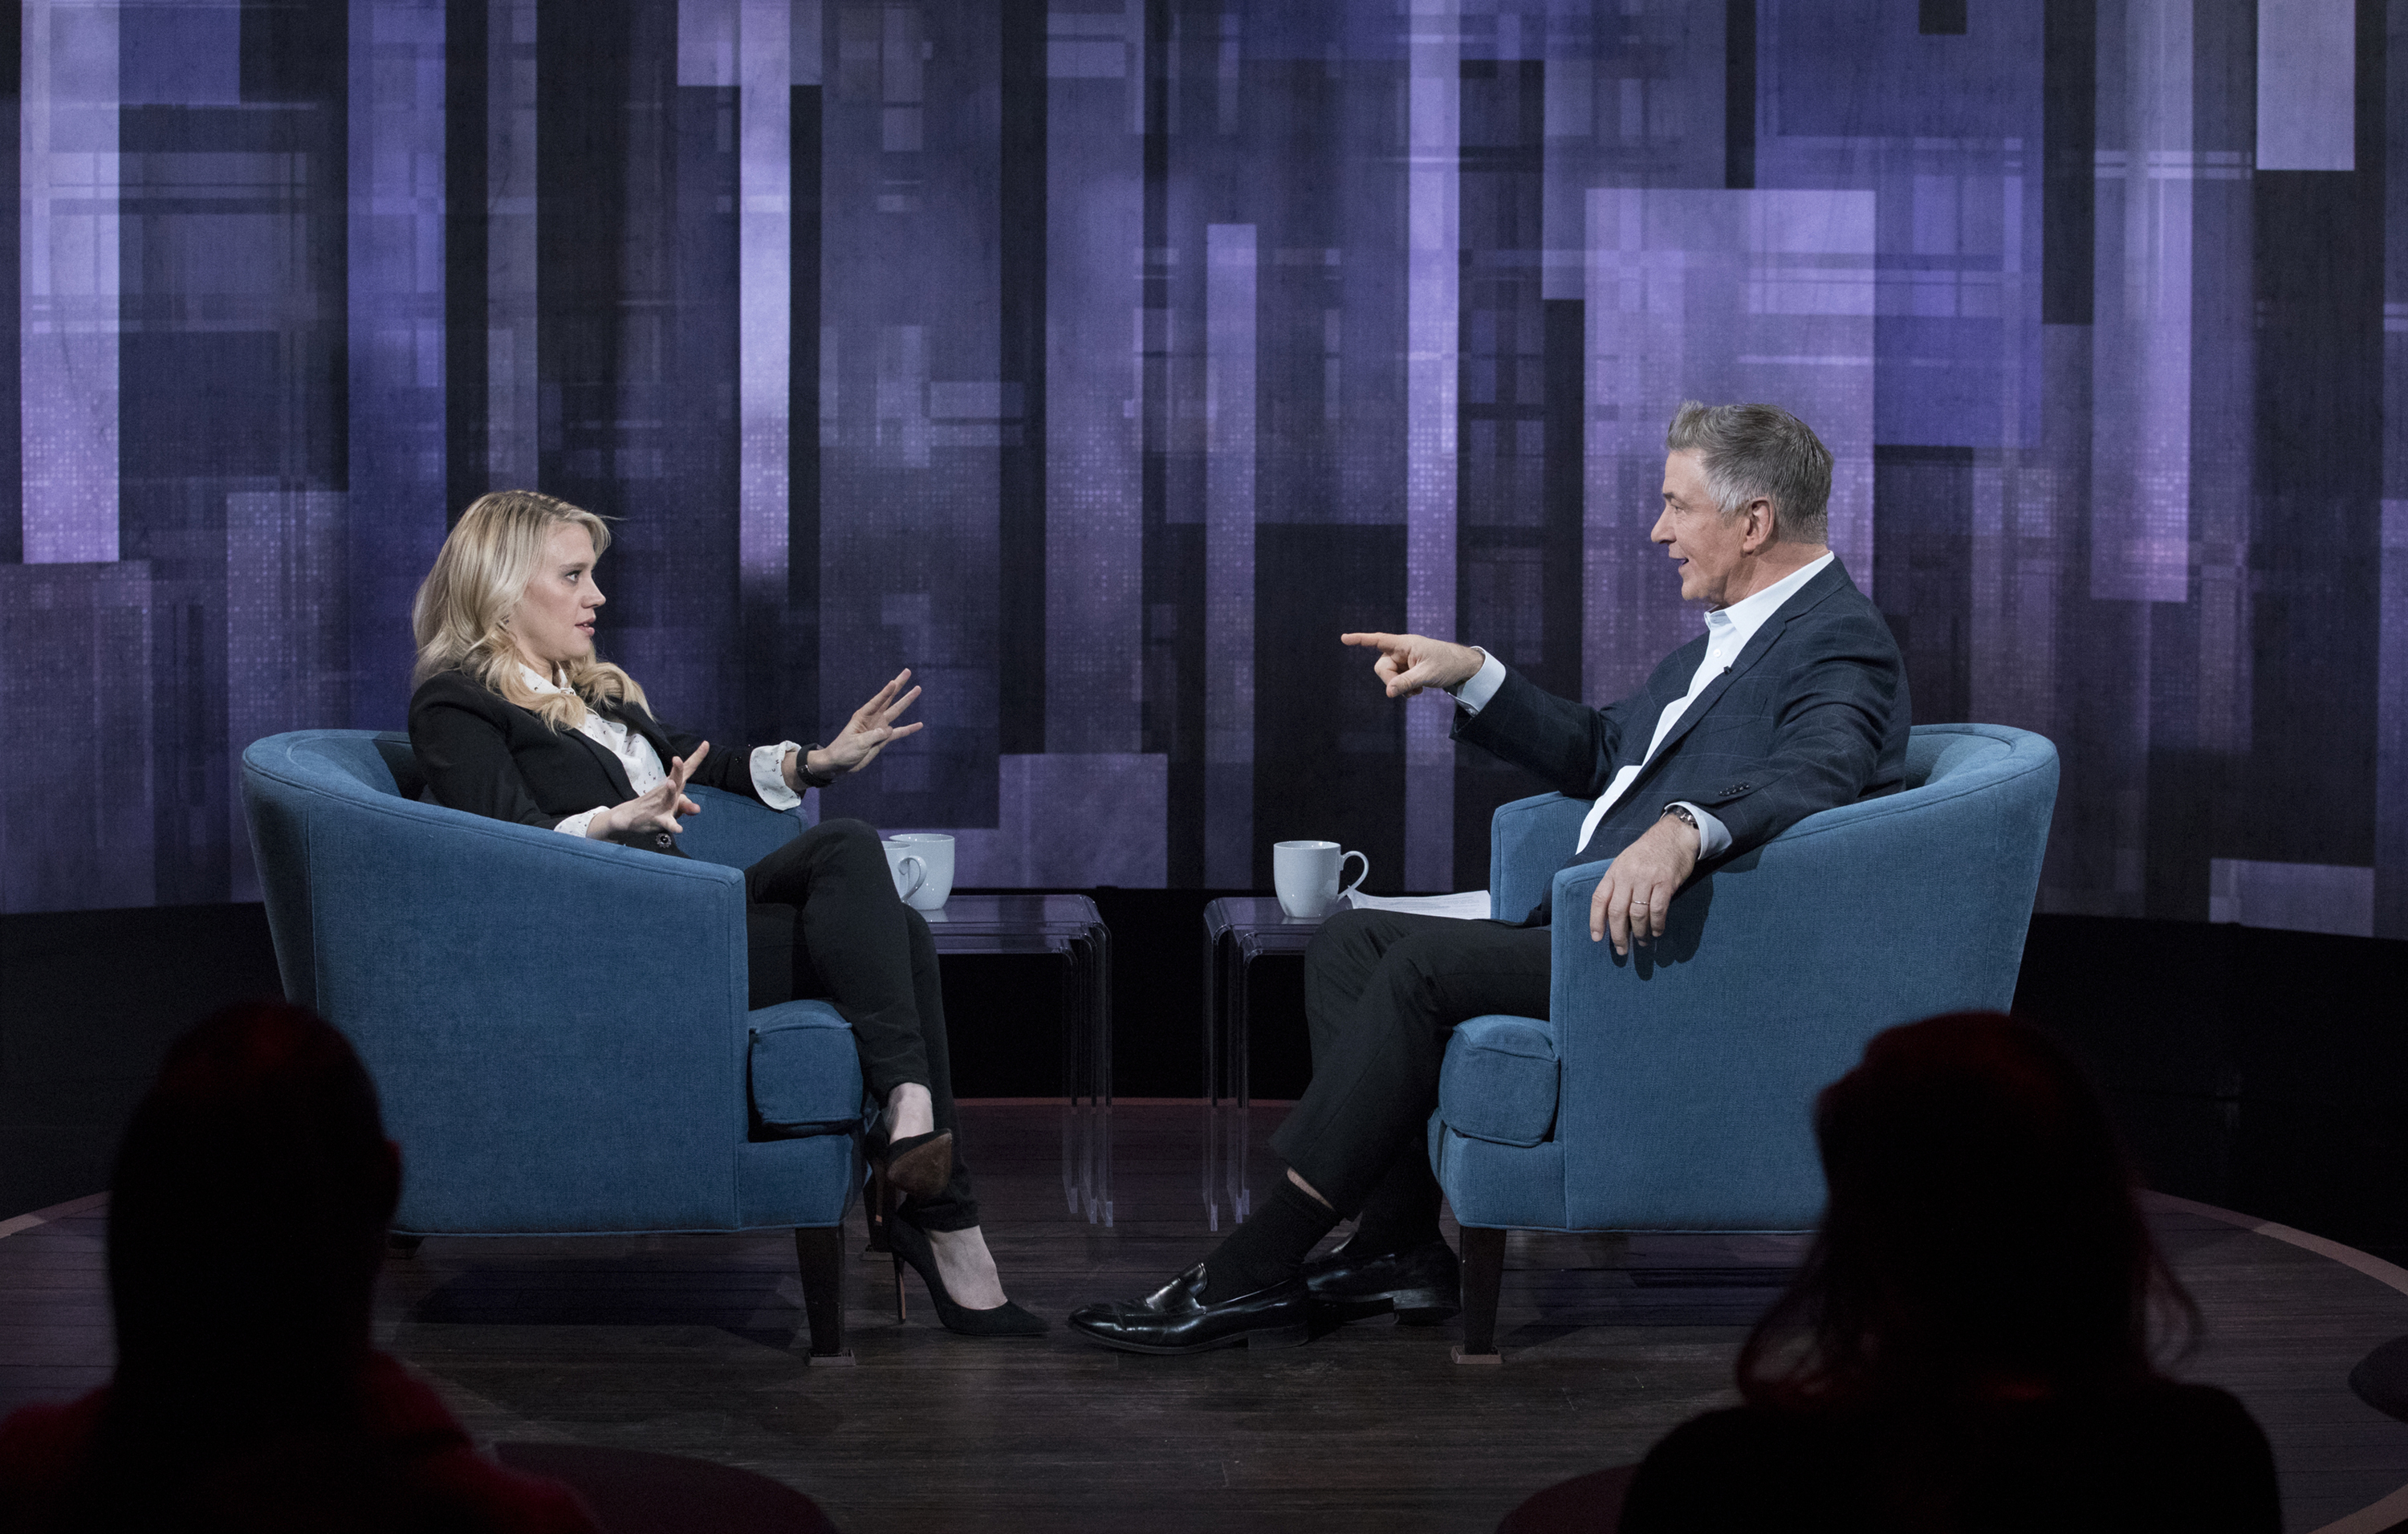 Kate McKinnon and Alec Baldwin on The Alec Baldwin Show